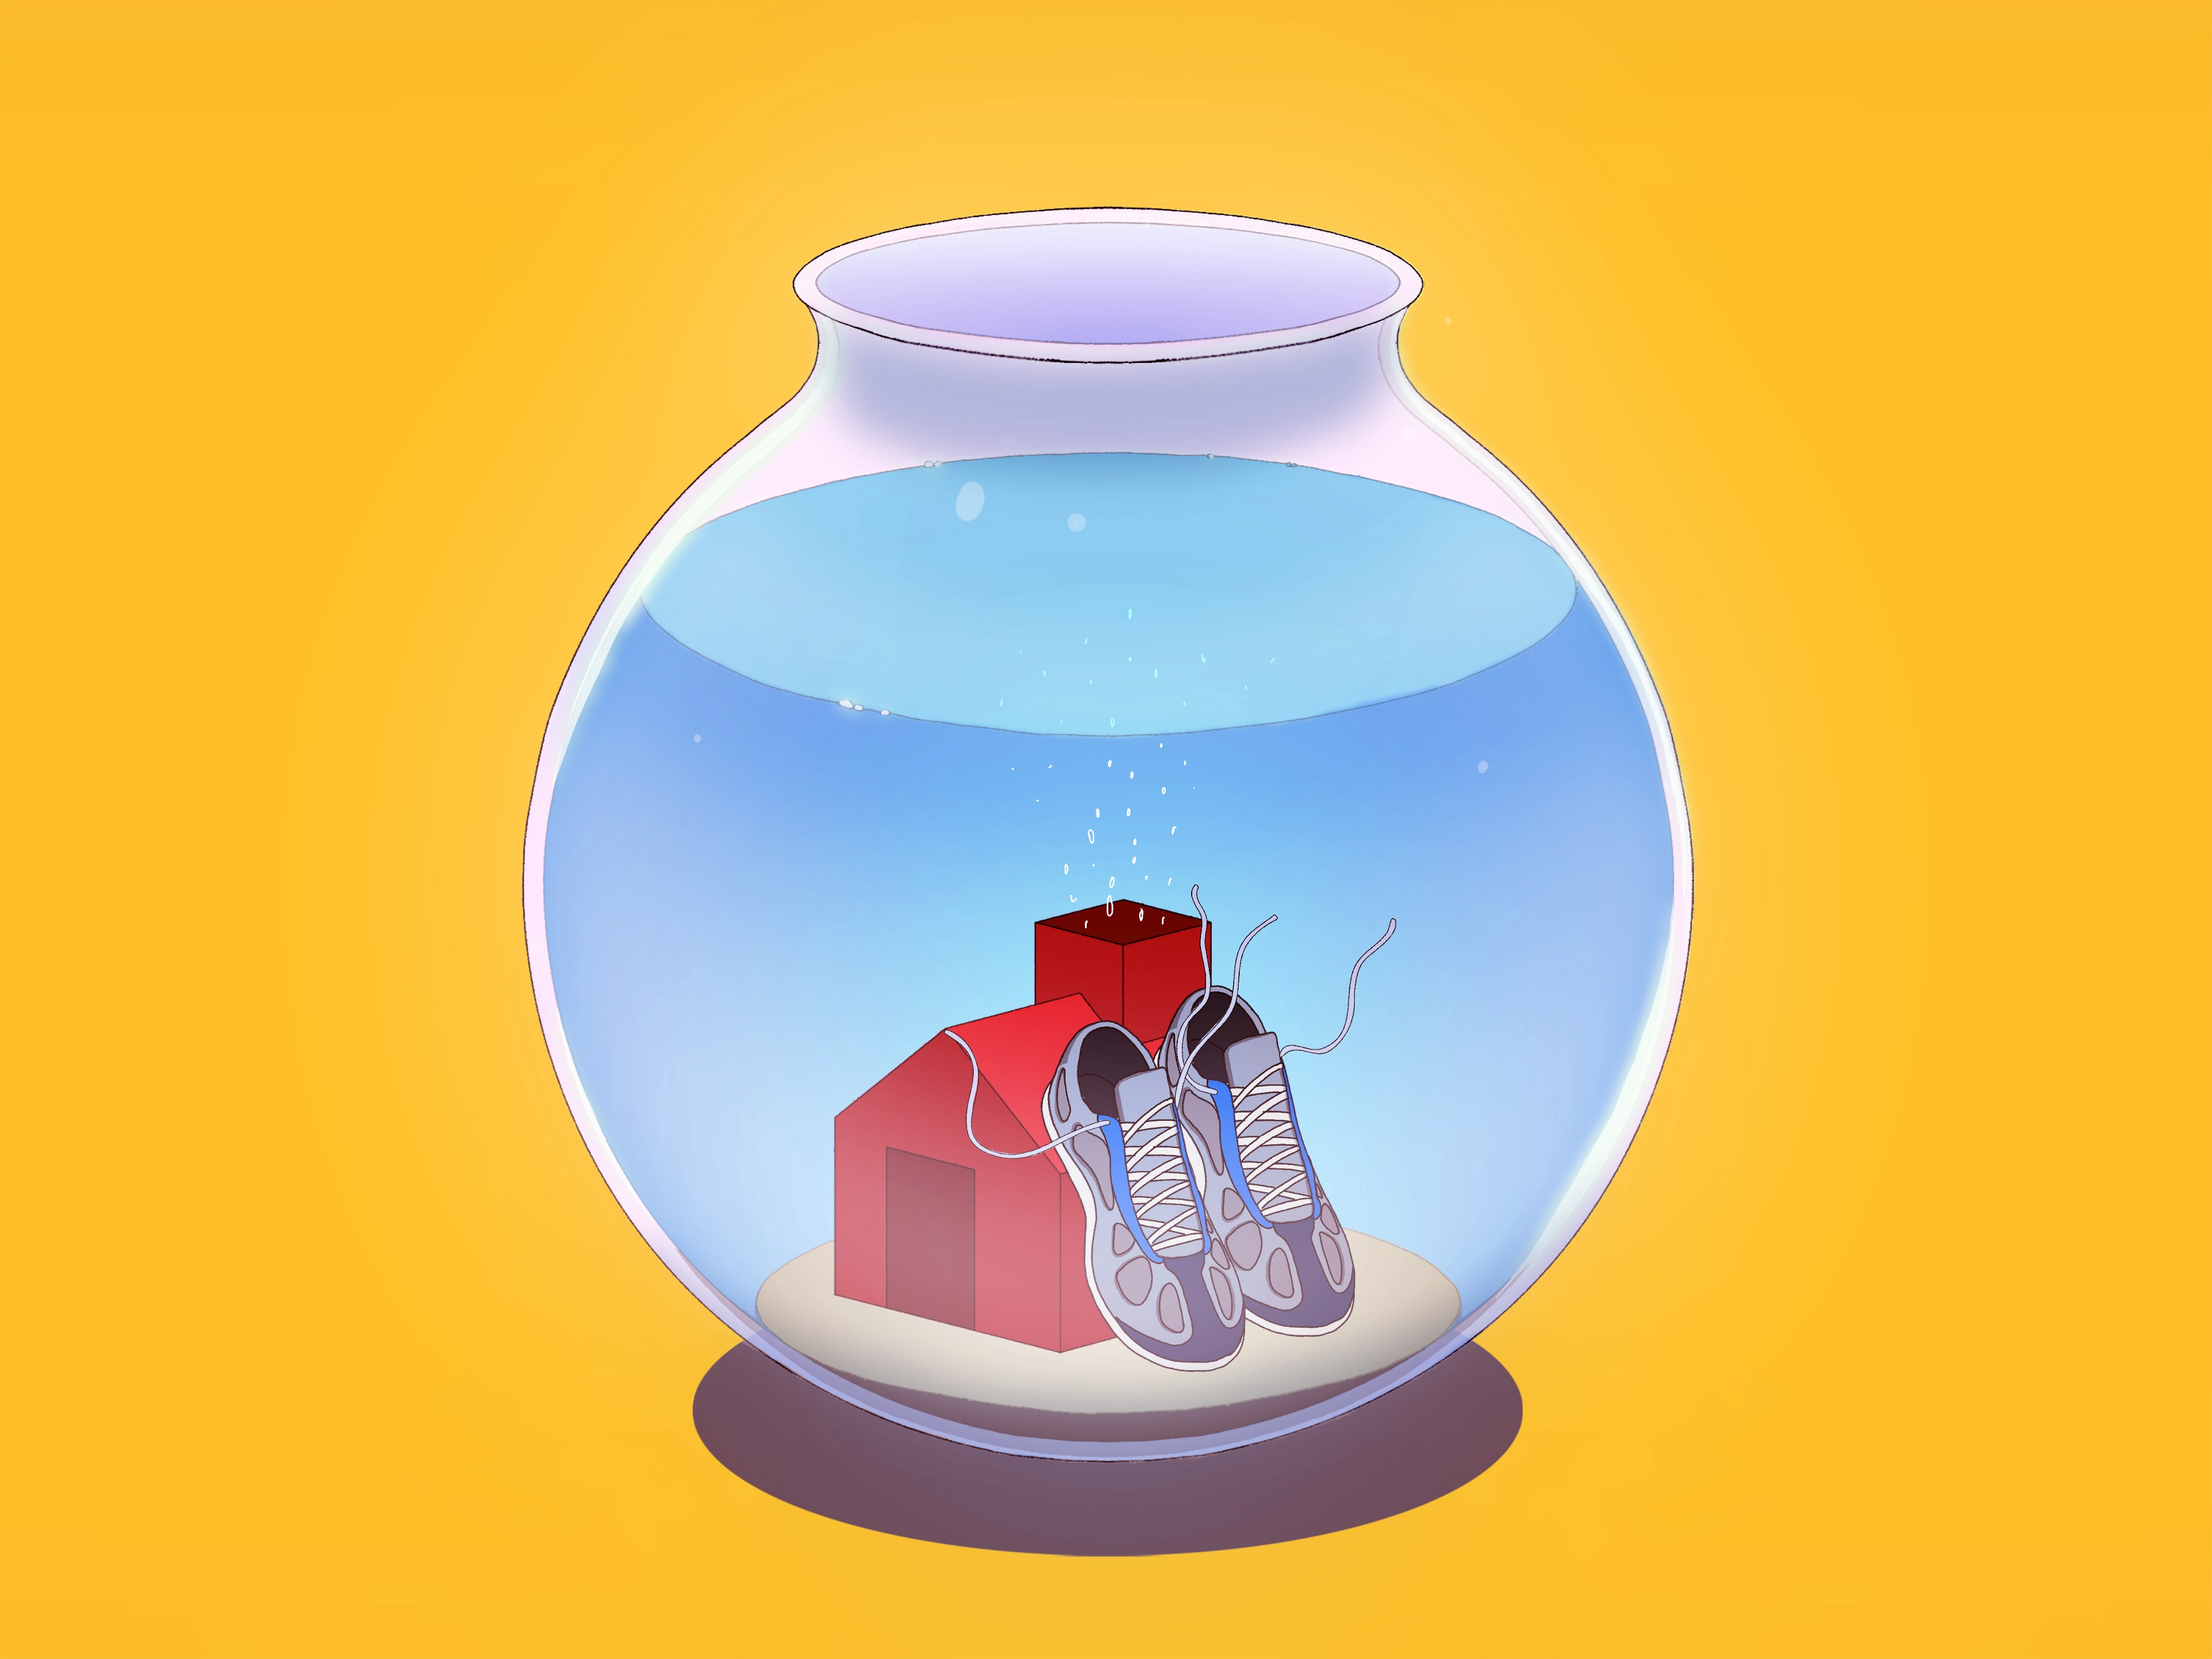 A pair of running shoes and a small house inside a fishbowl.